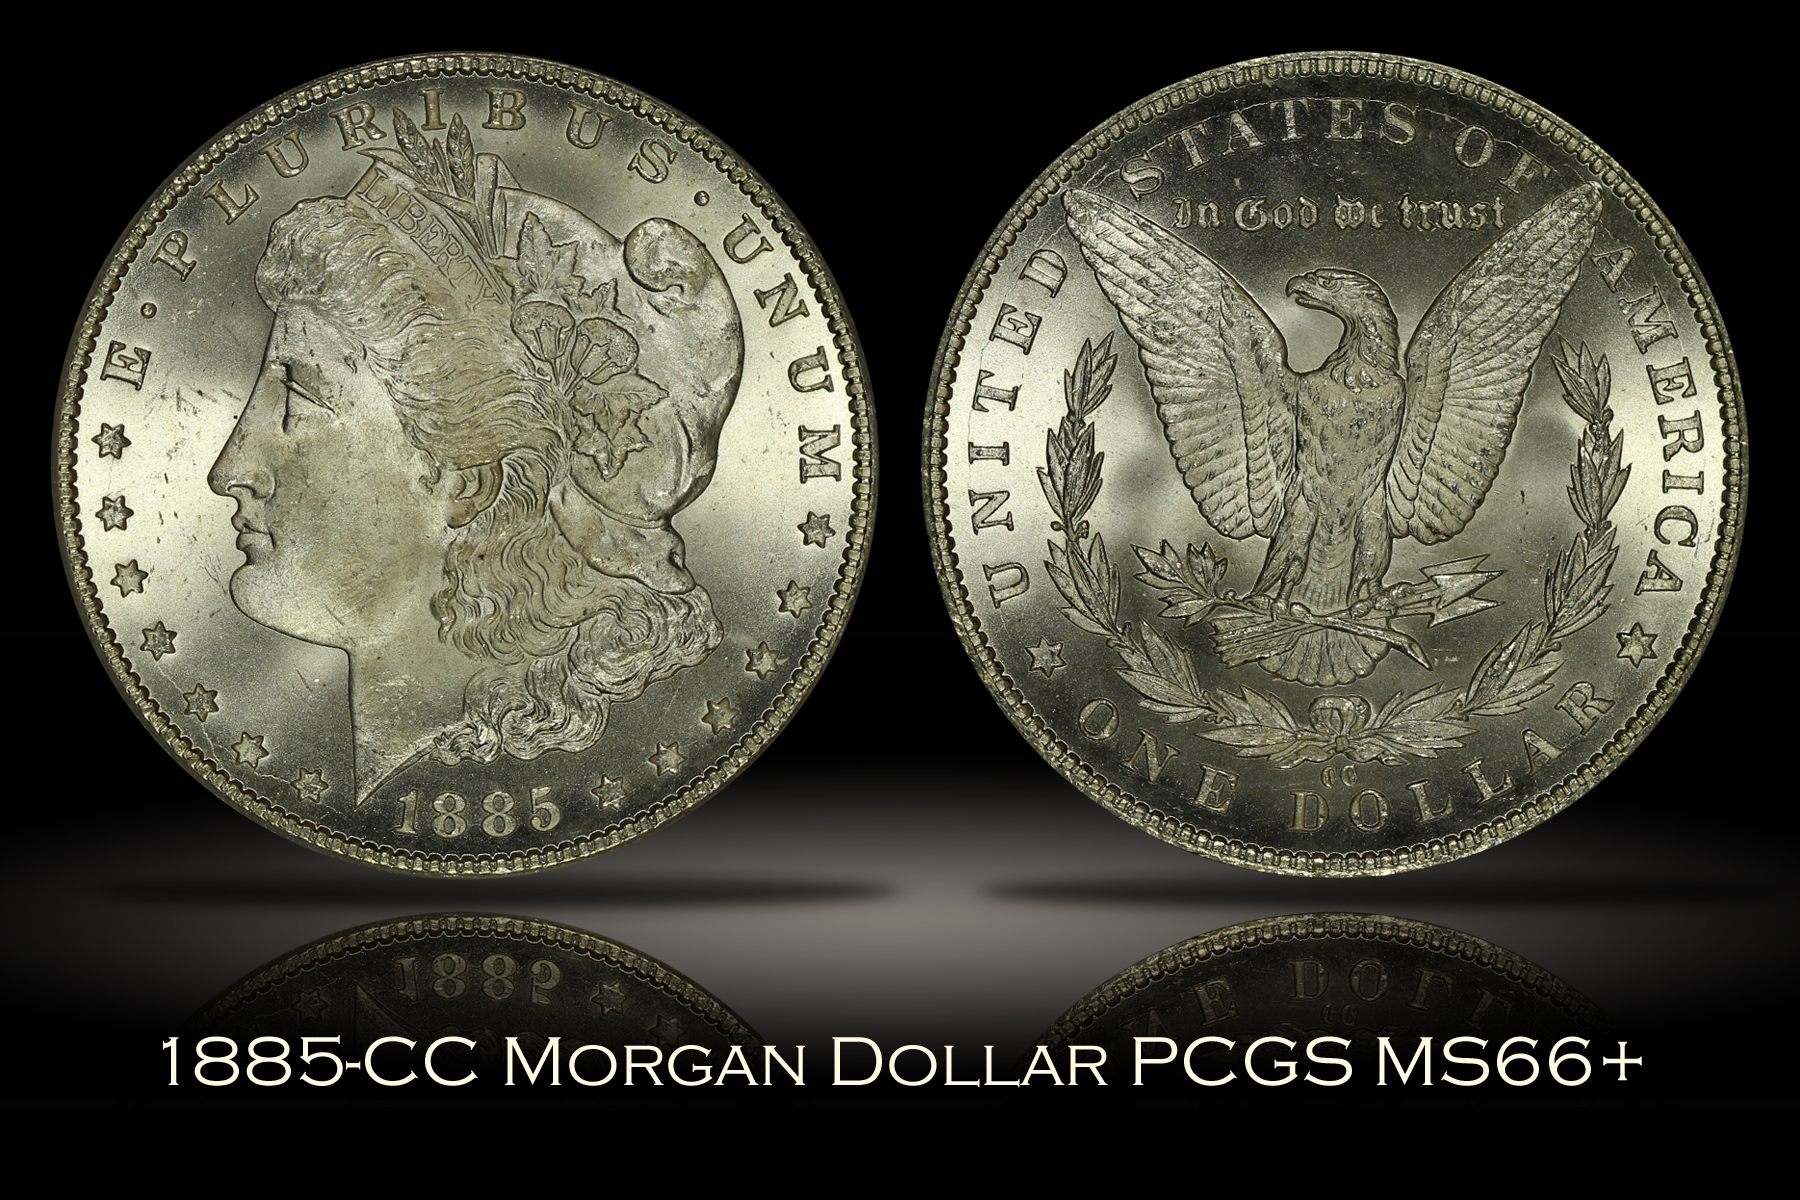 1885-CC Morgan Dollar PCGS MS66+